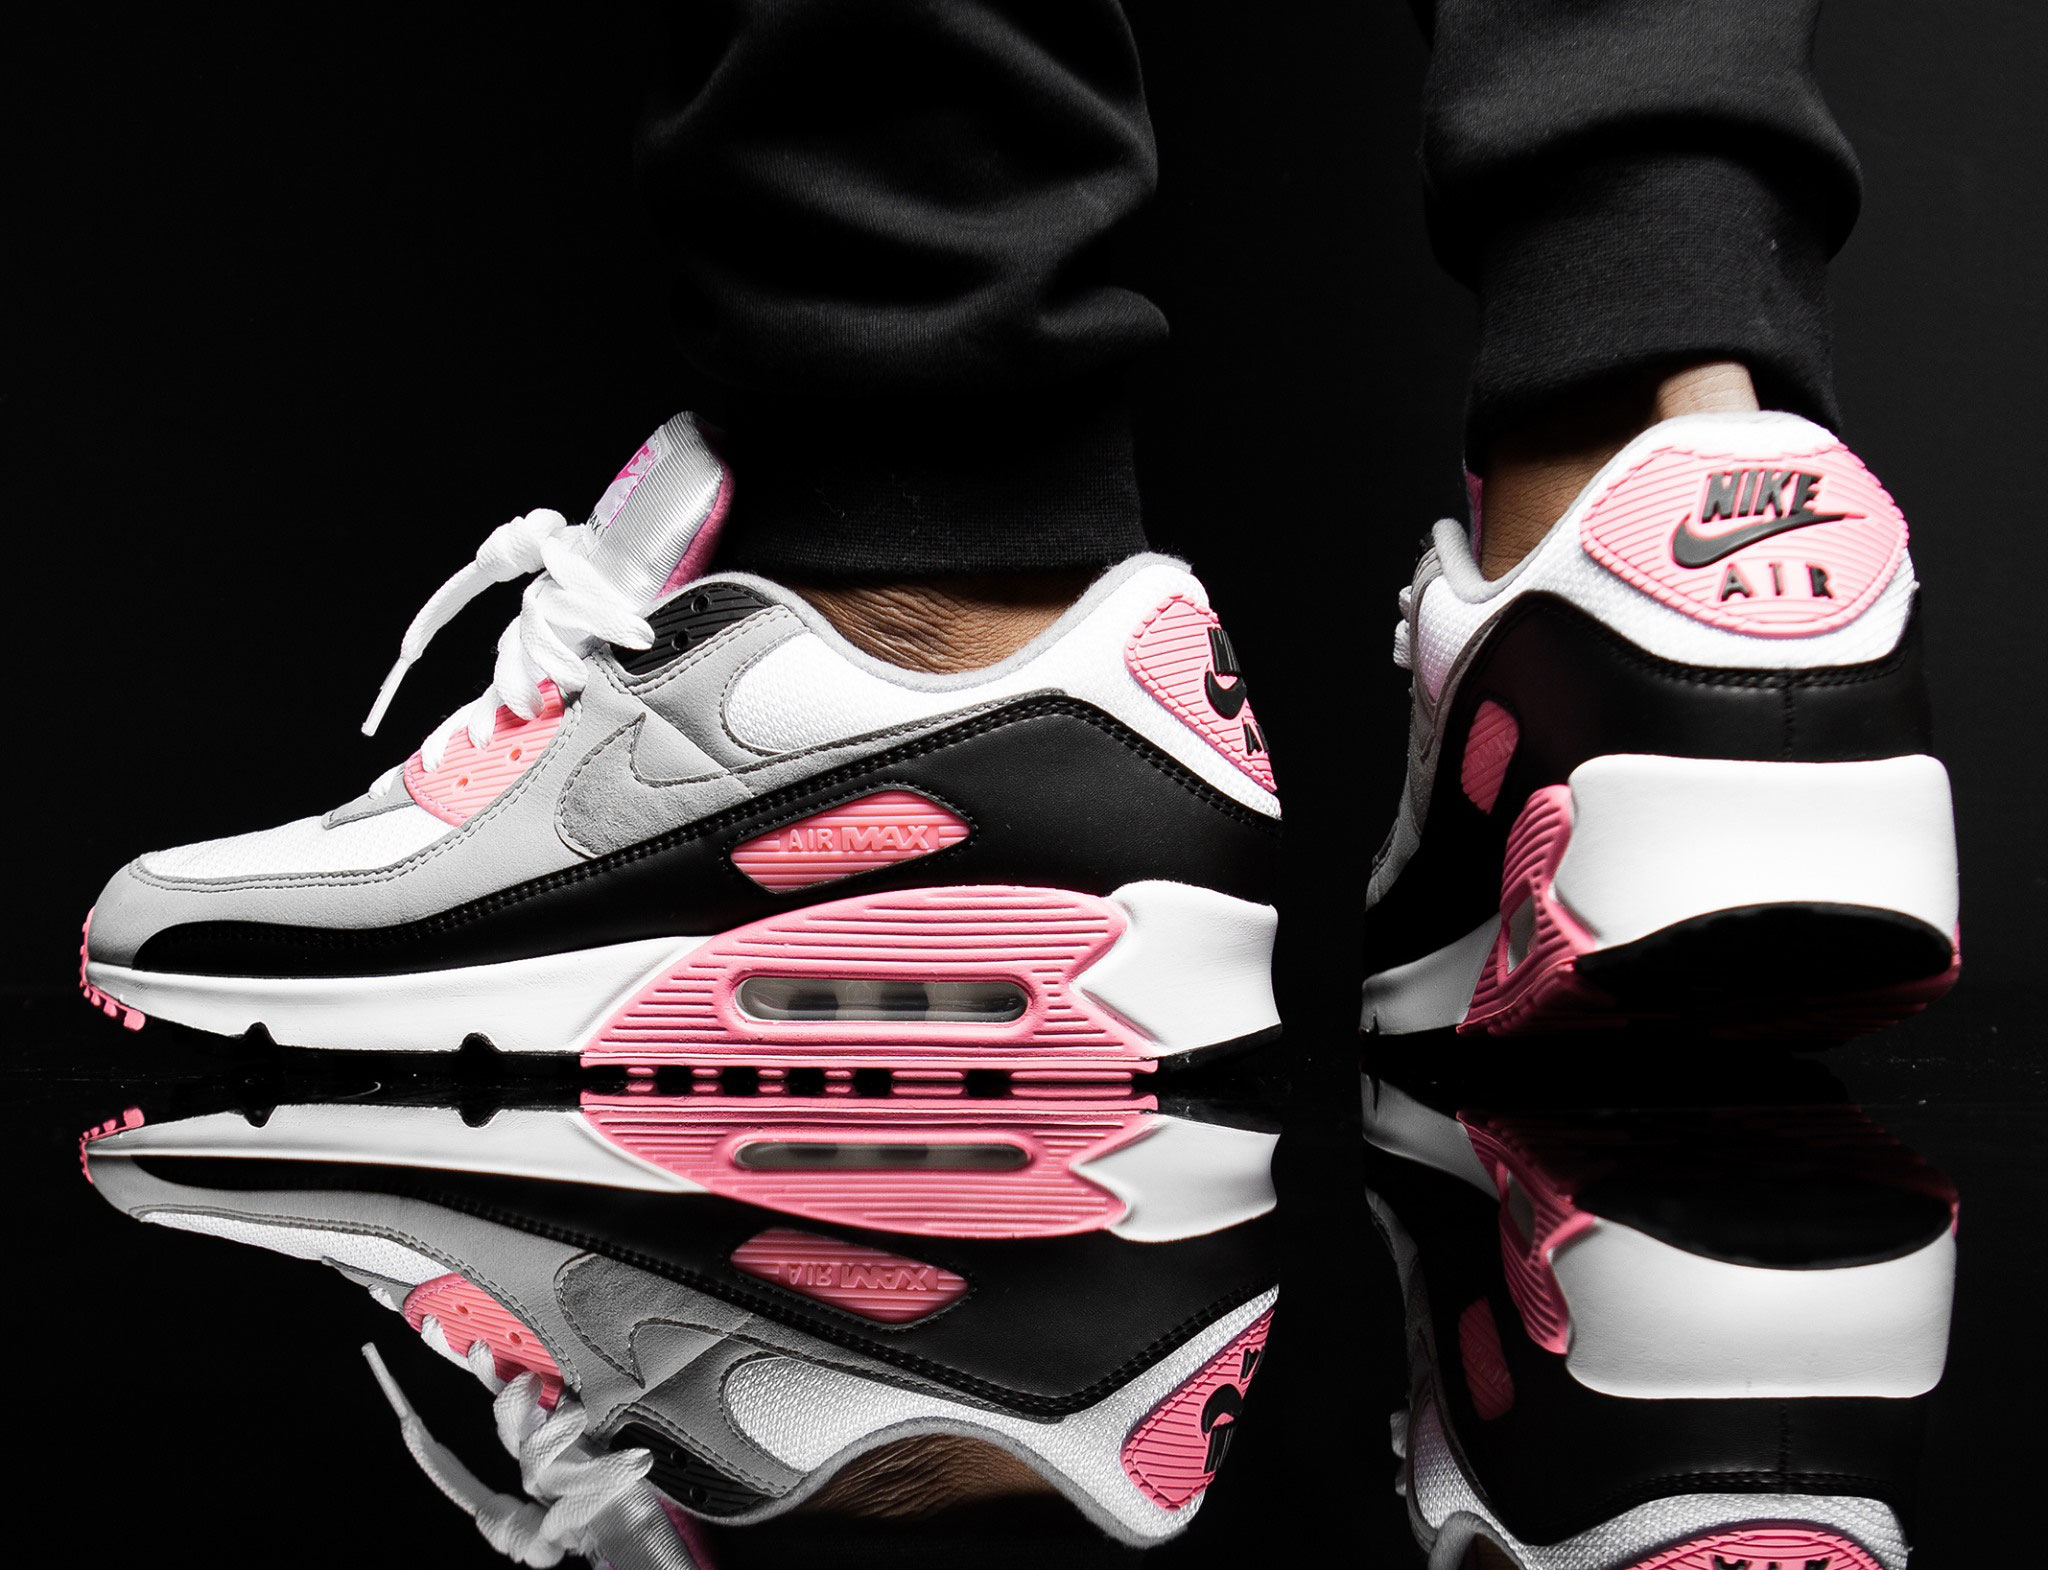 nike-air-max-90-rose-pink-grey